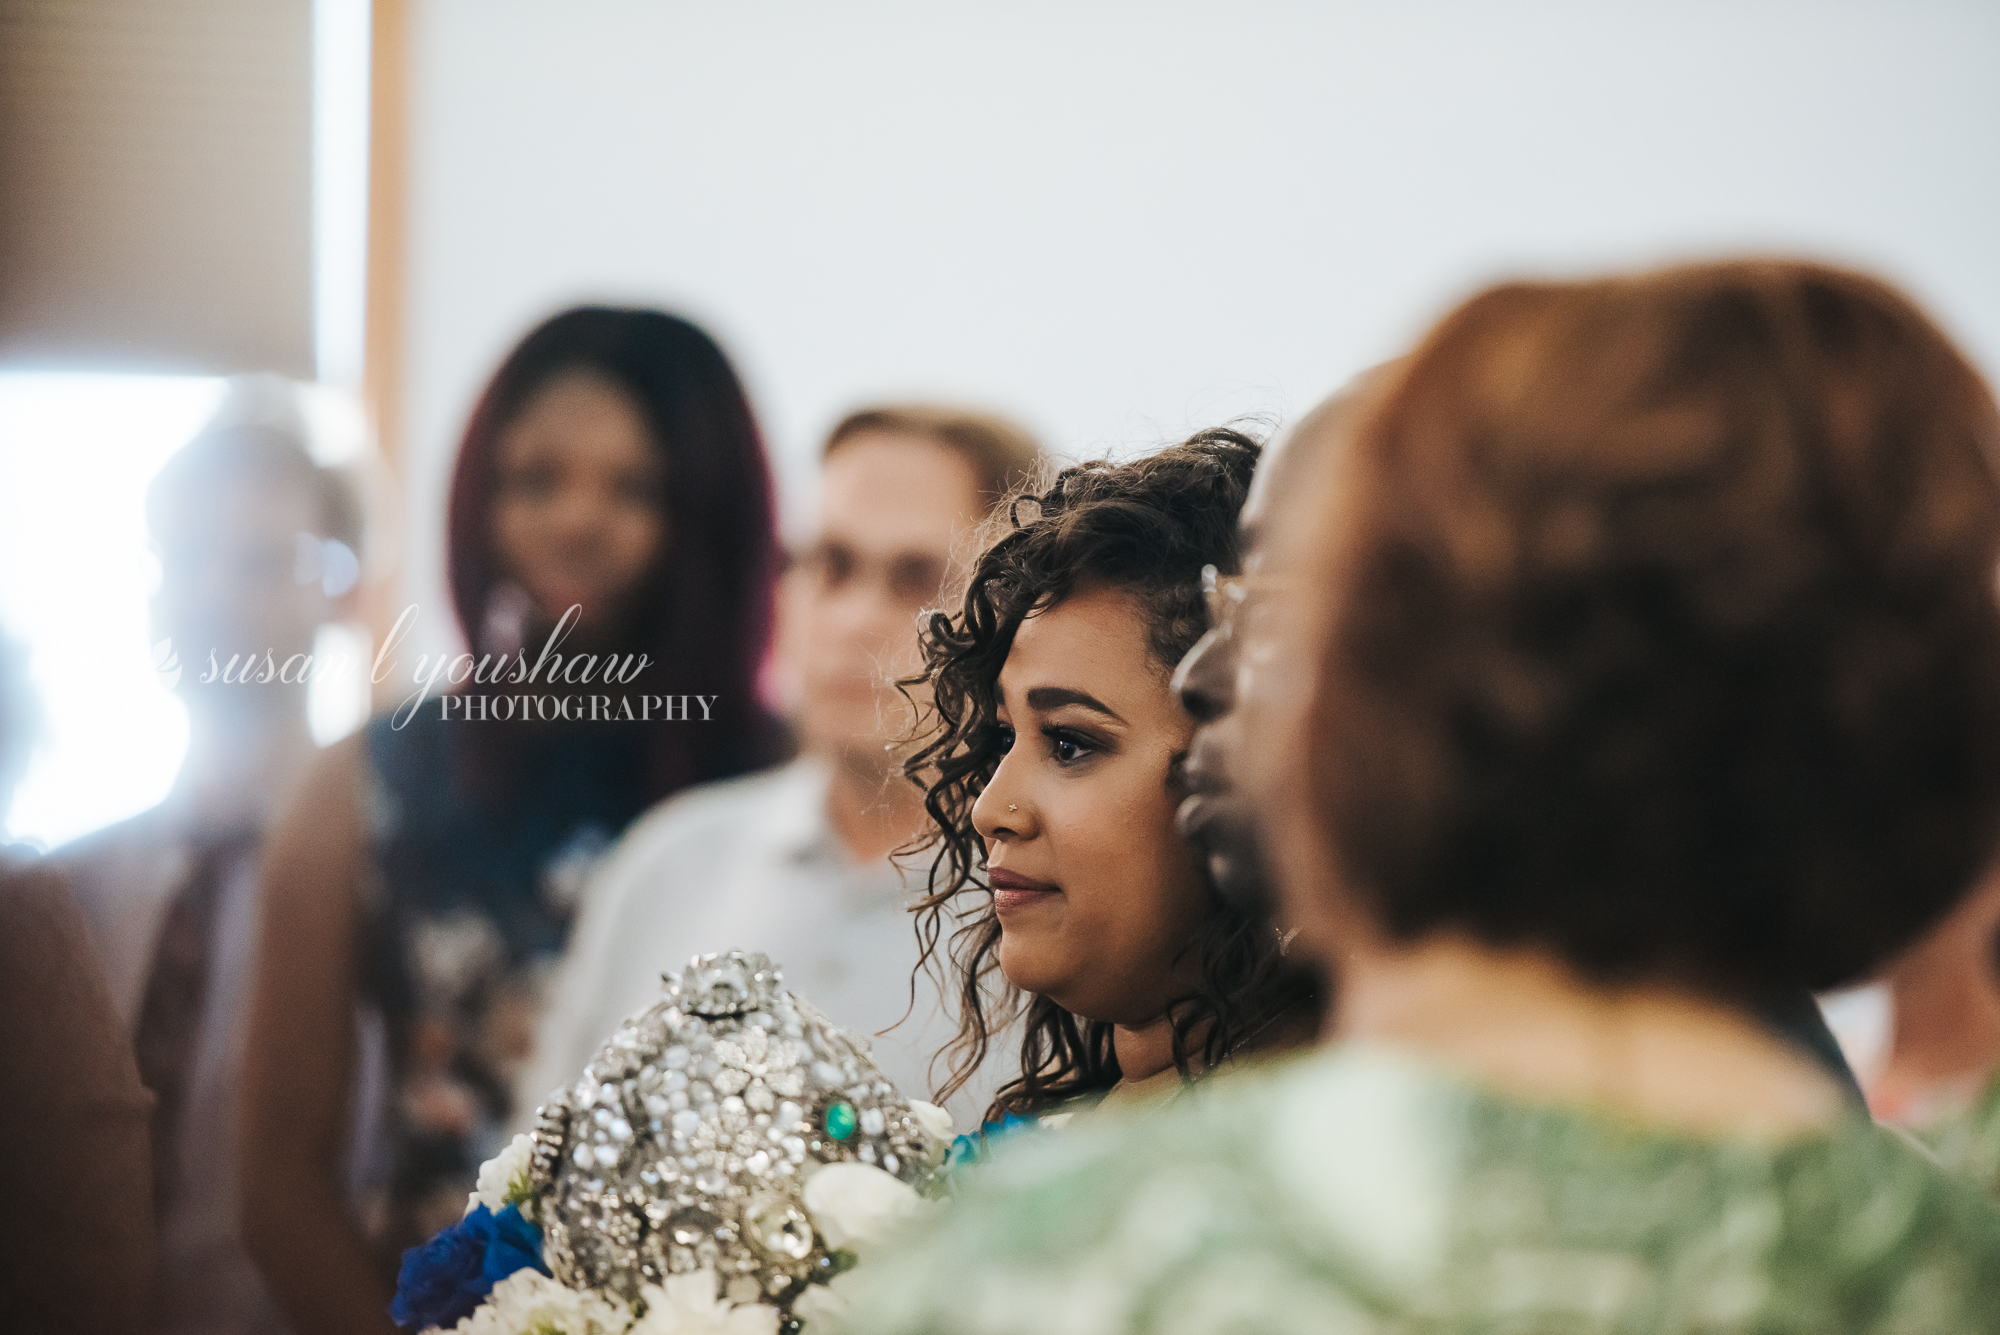 Katelyn and Wes Wedding Photos 07-13-2019 SLY Photography-59.jpg